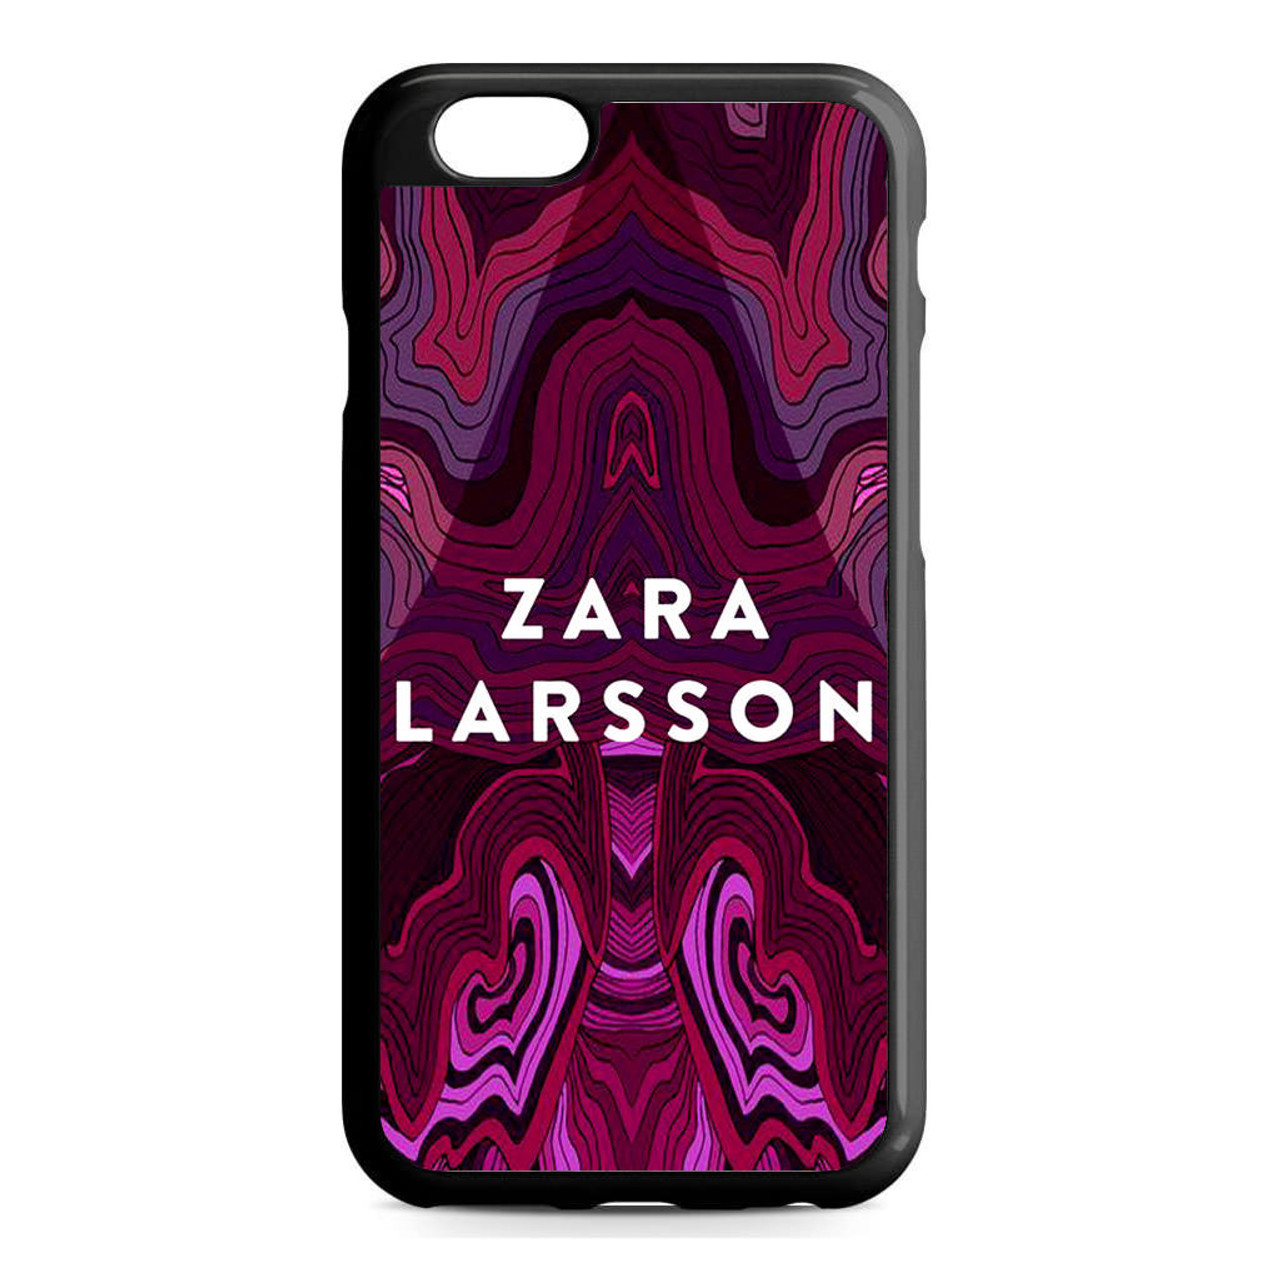 iphone 6 case zara